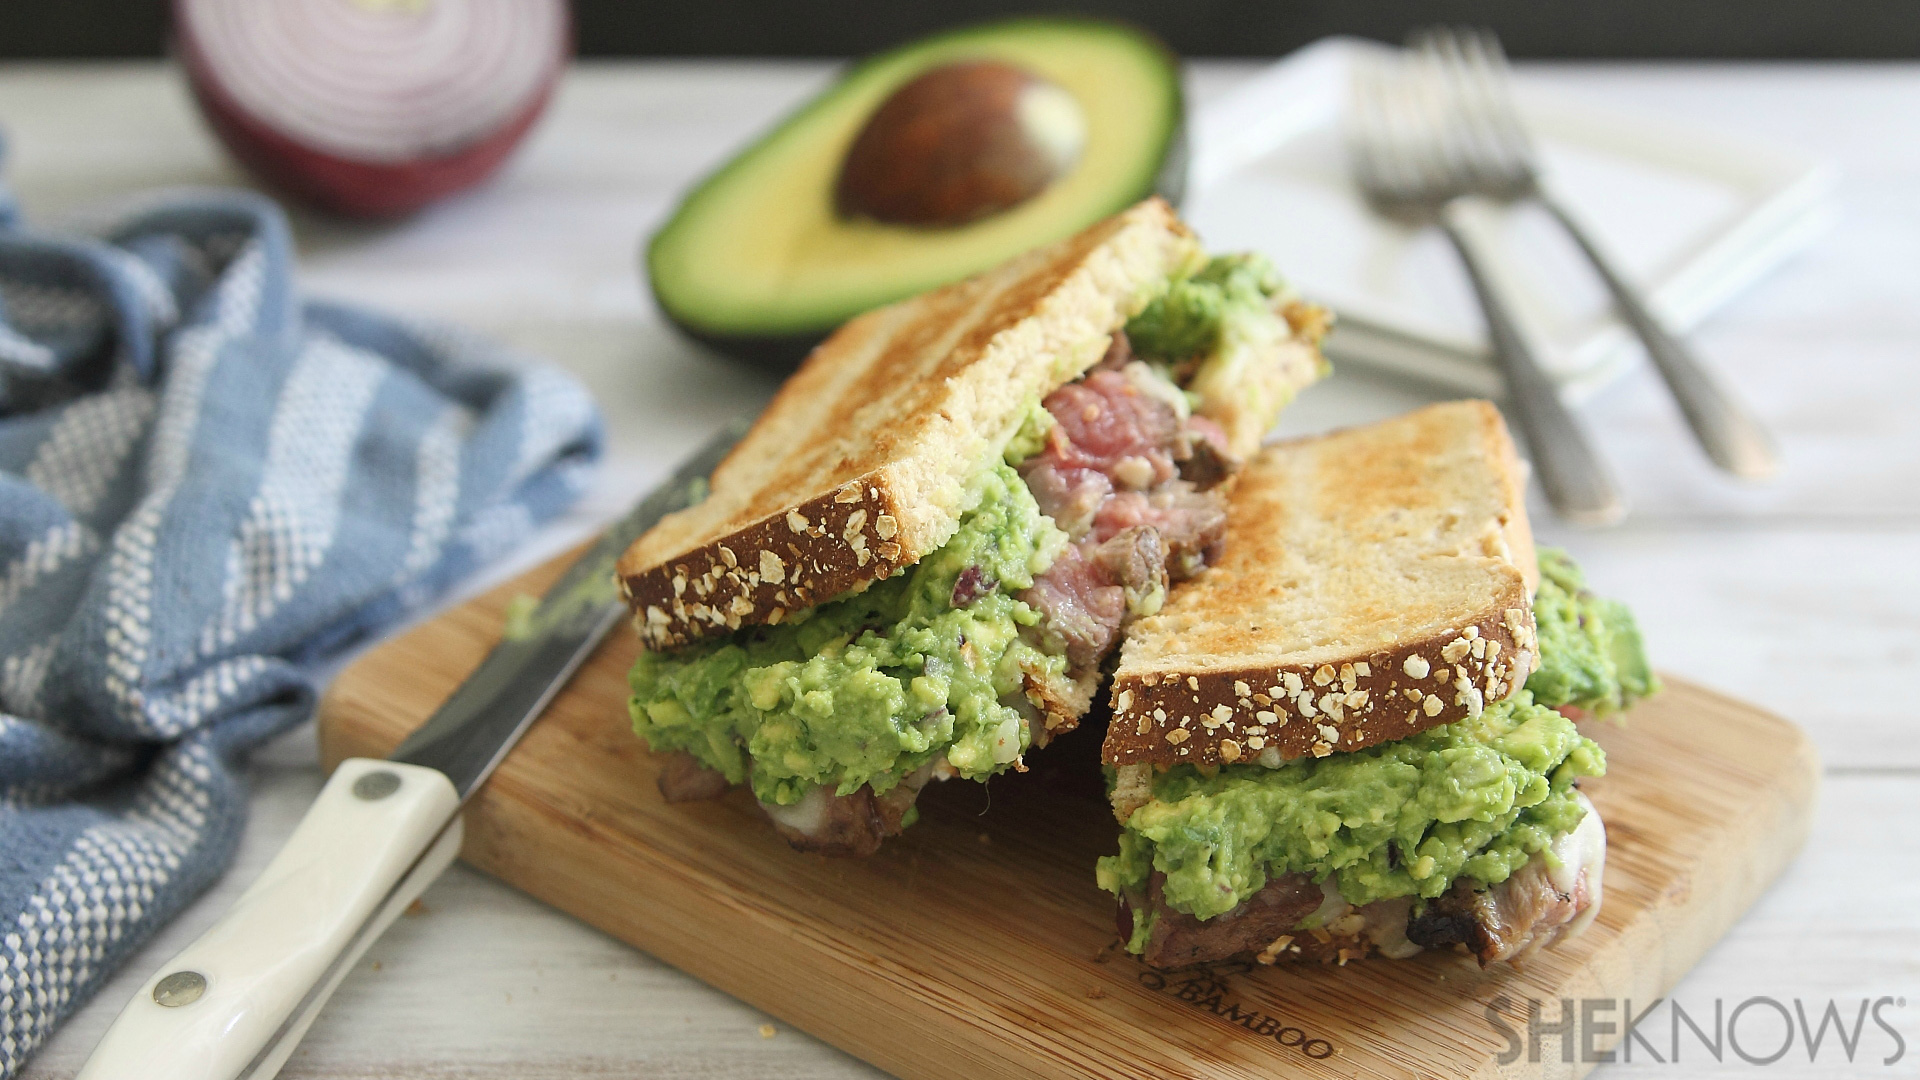 Cheesy steak & guacamole sandwich